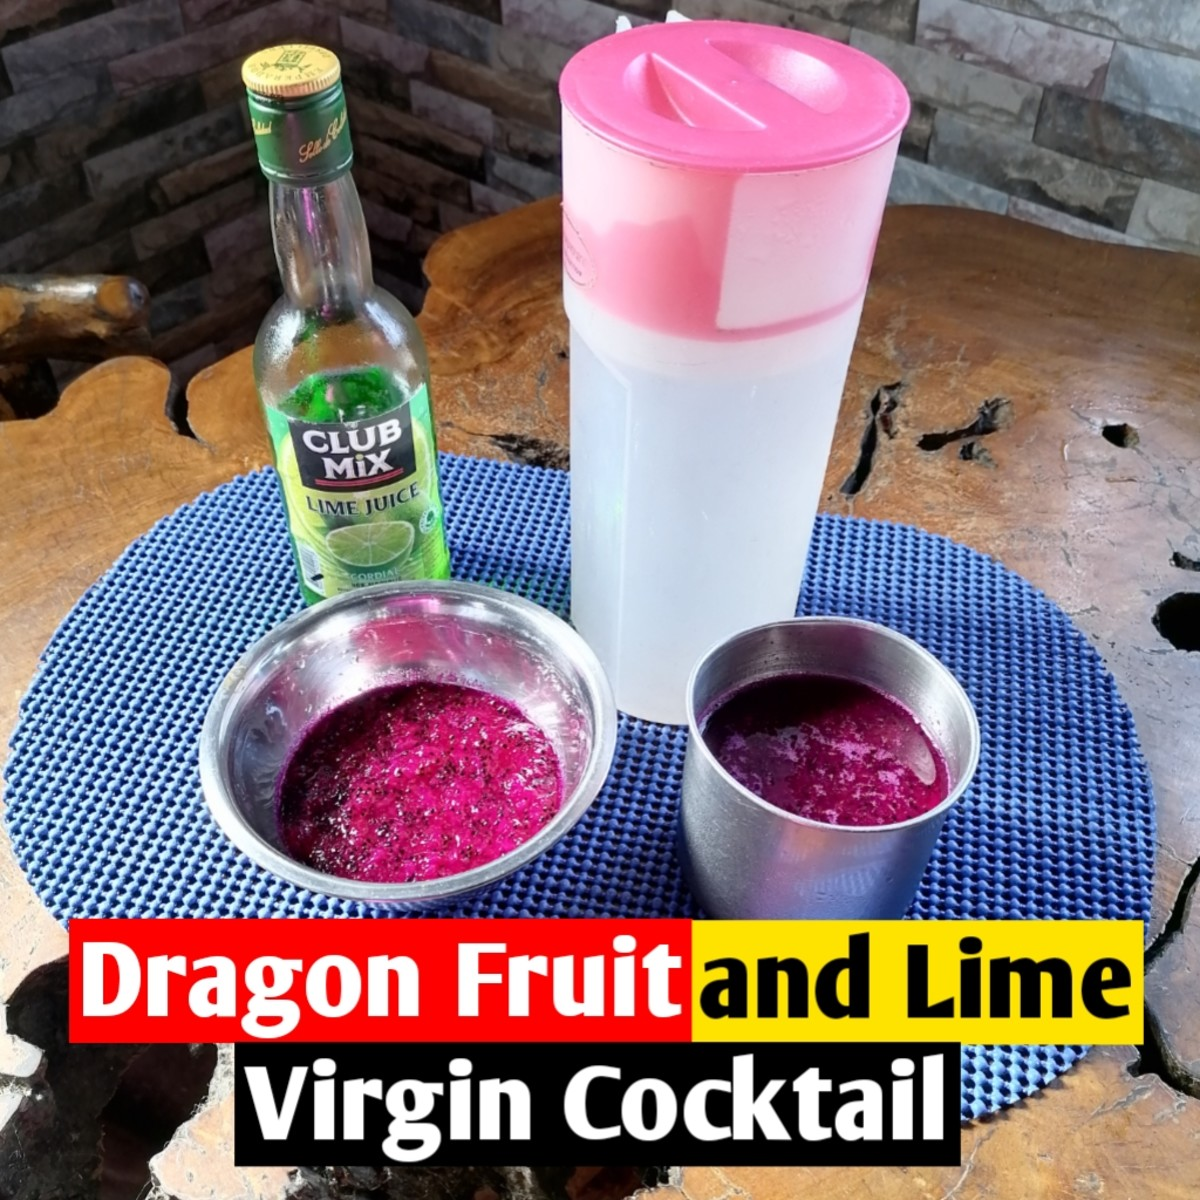 Dragon fruit and lime virgin cocktail